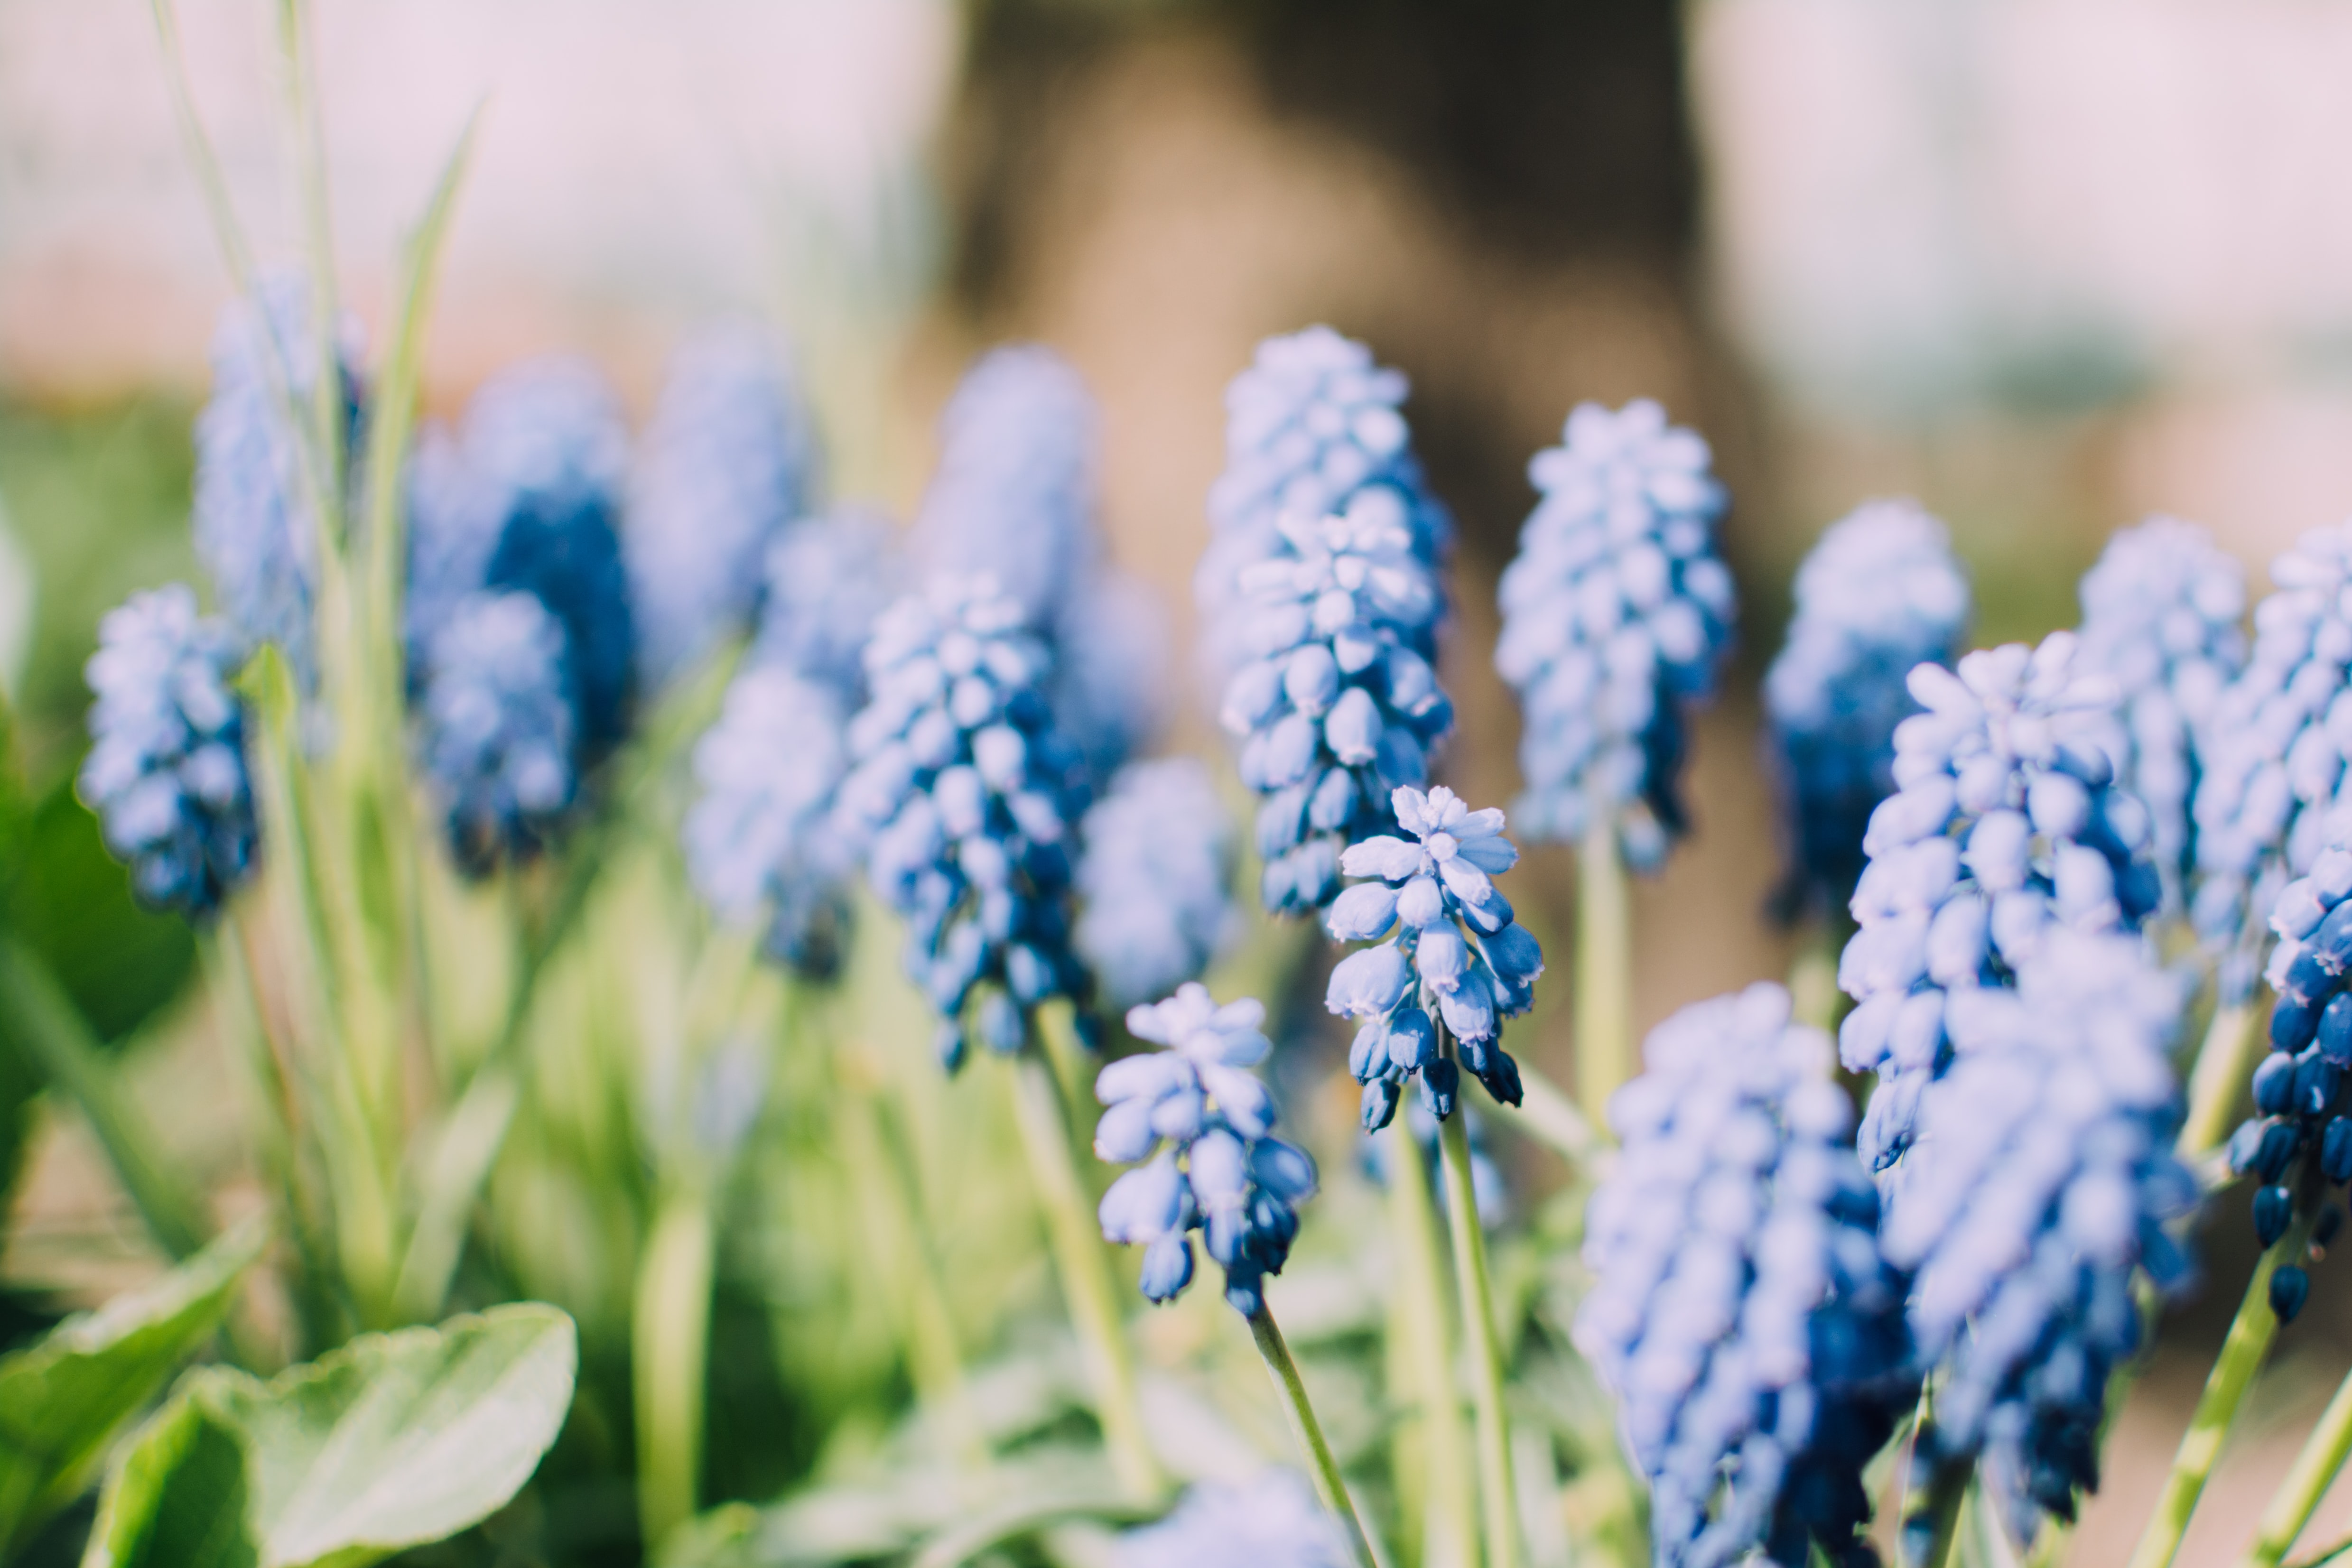 Distinctive blue flowers with green stems in garden in Spring